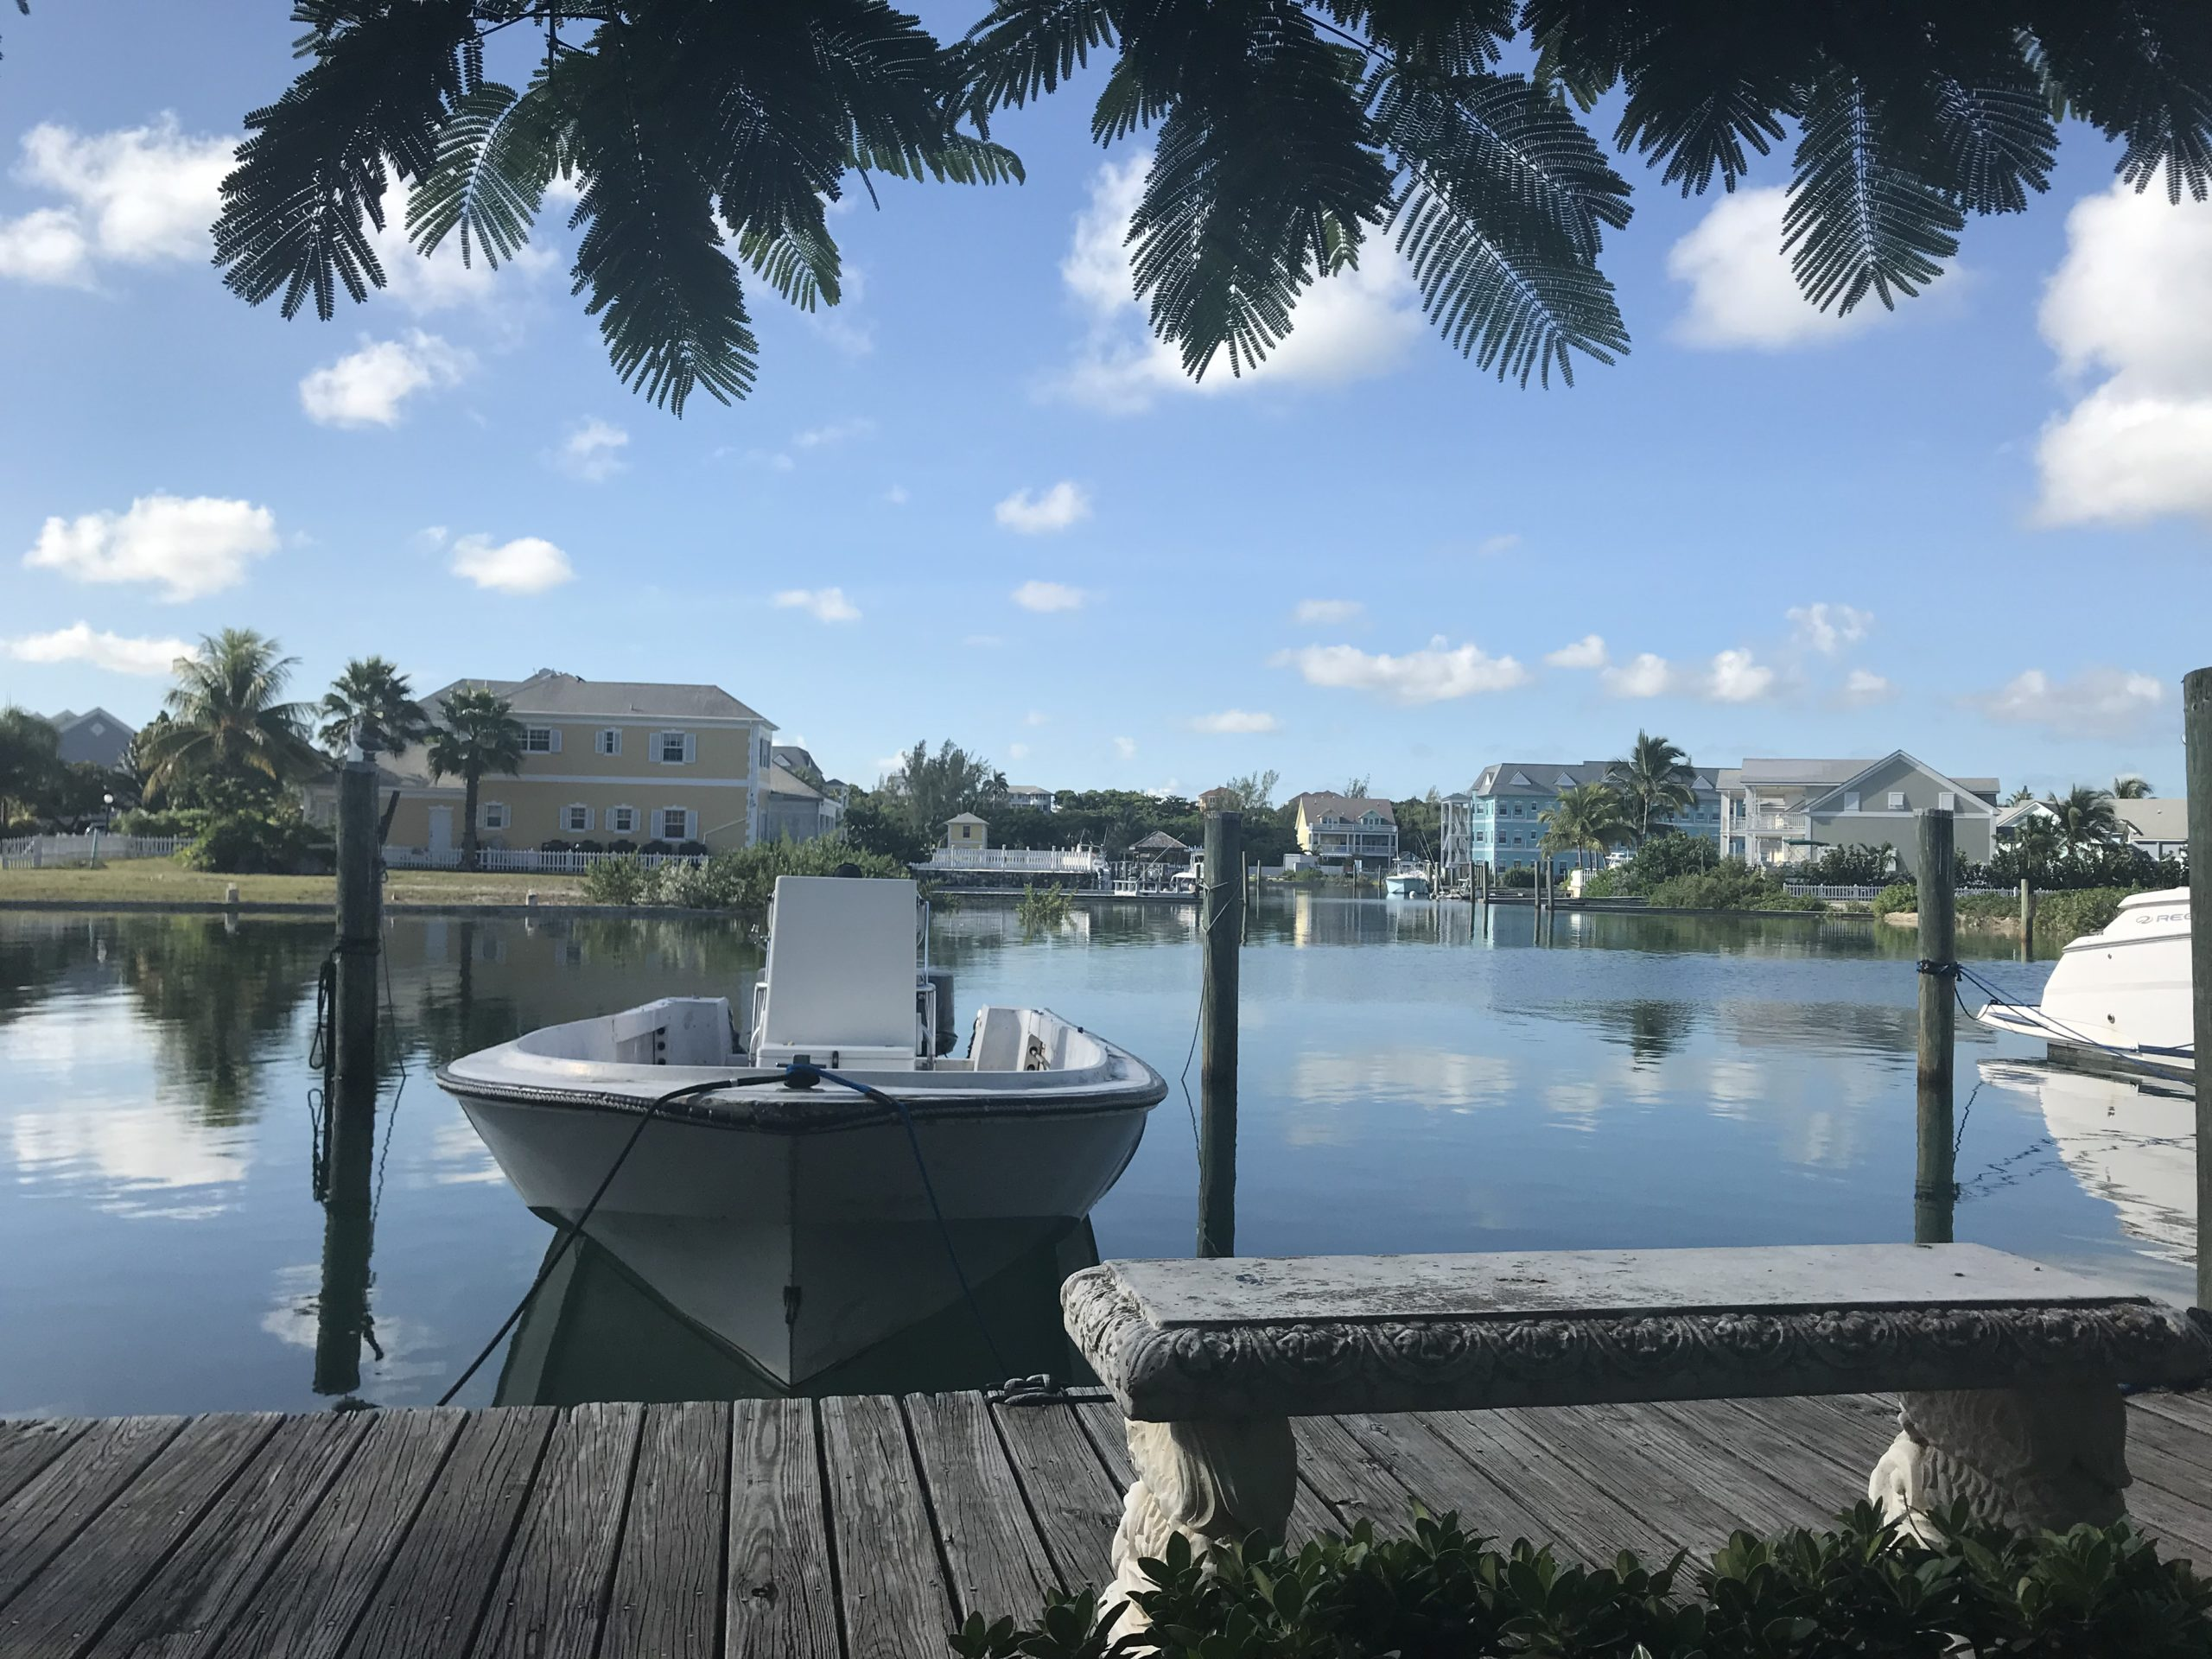 Last Minute Trip Bahamas: How to enjoy the blue paradise on a low budget